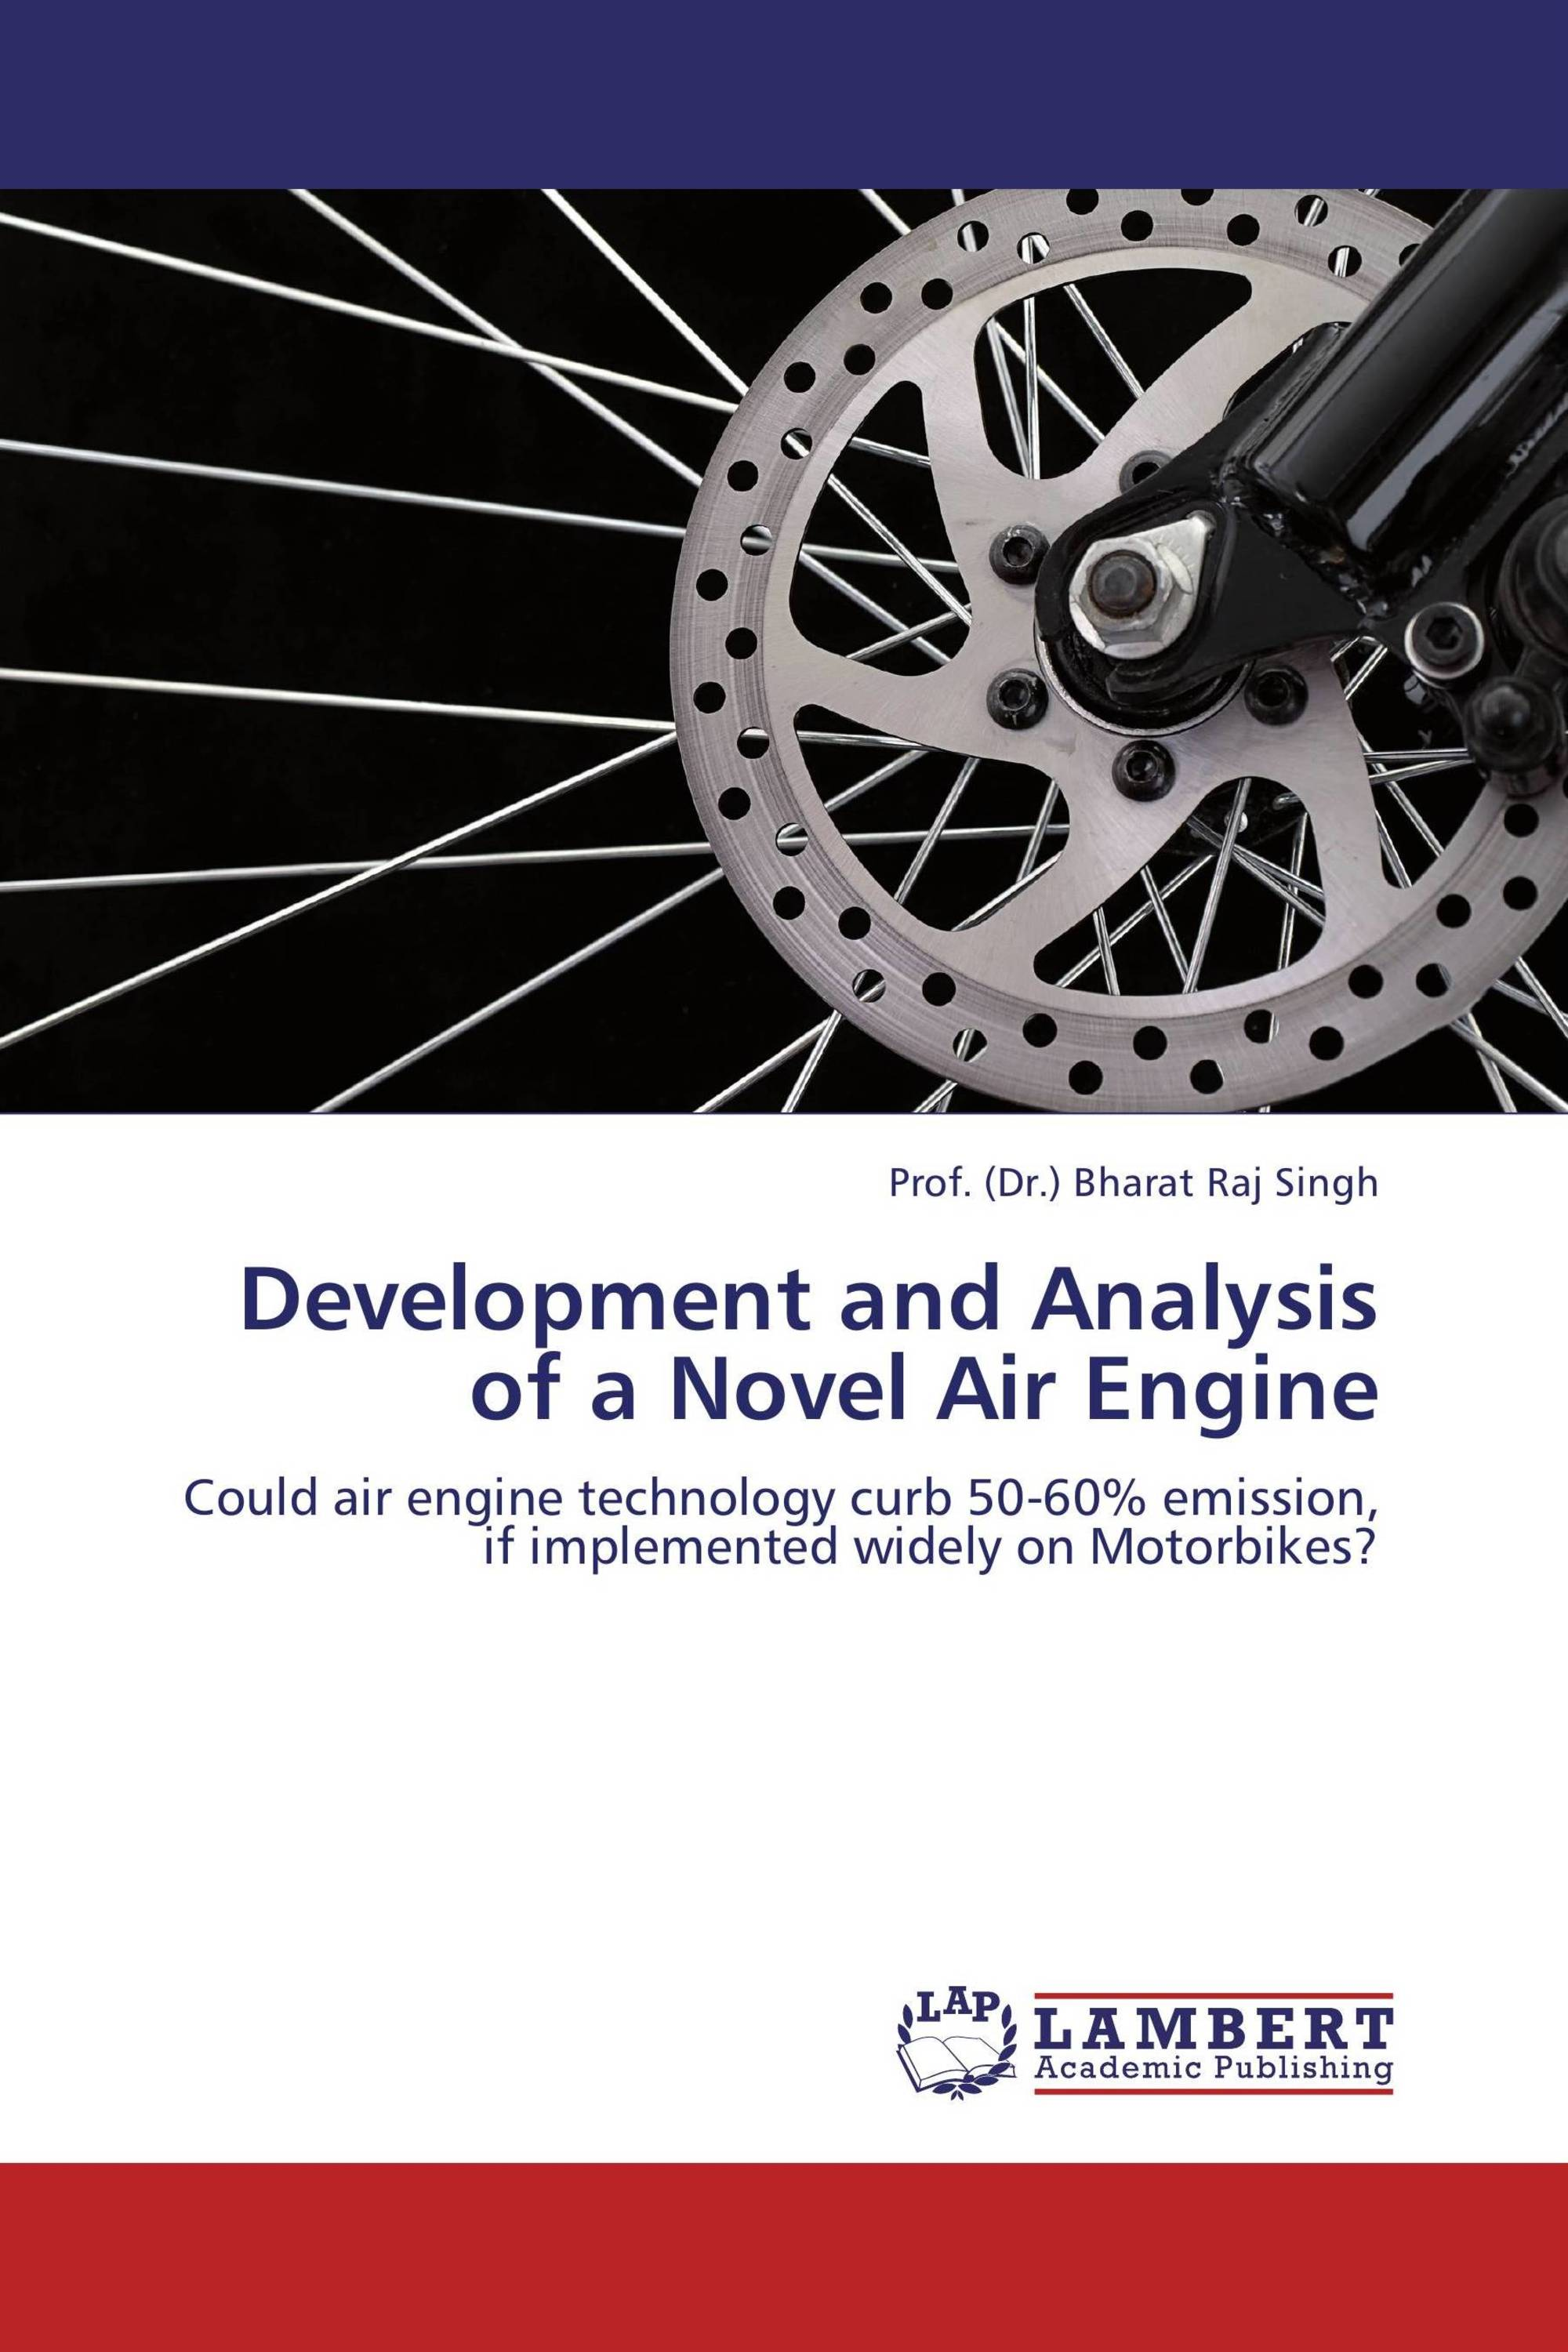 Development and Analysis of a Novel Air Engine